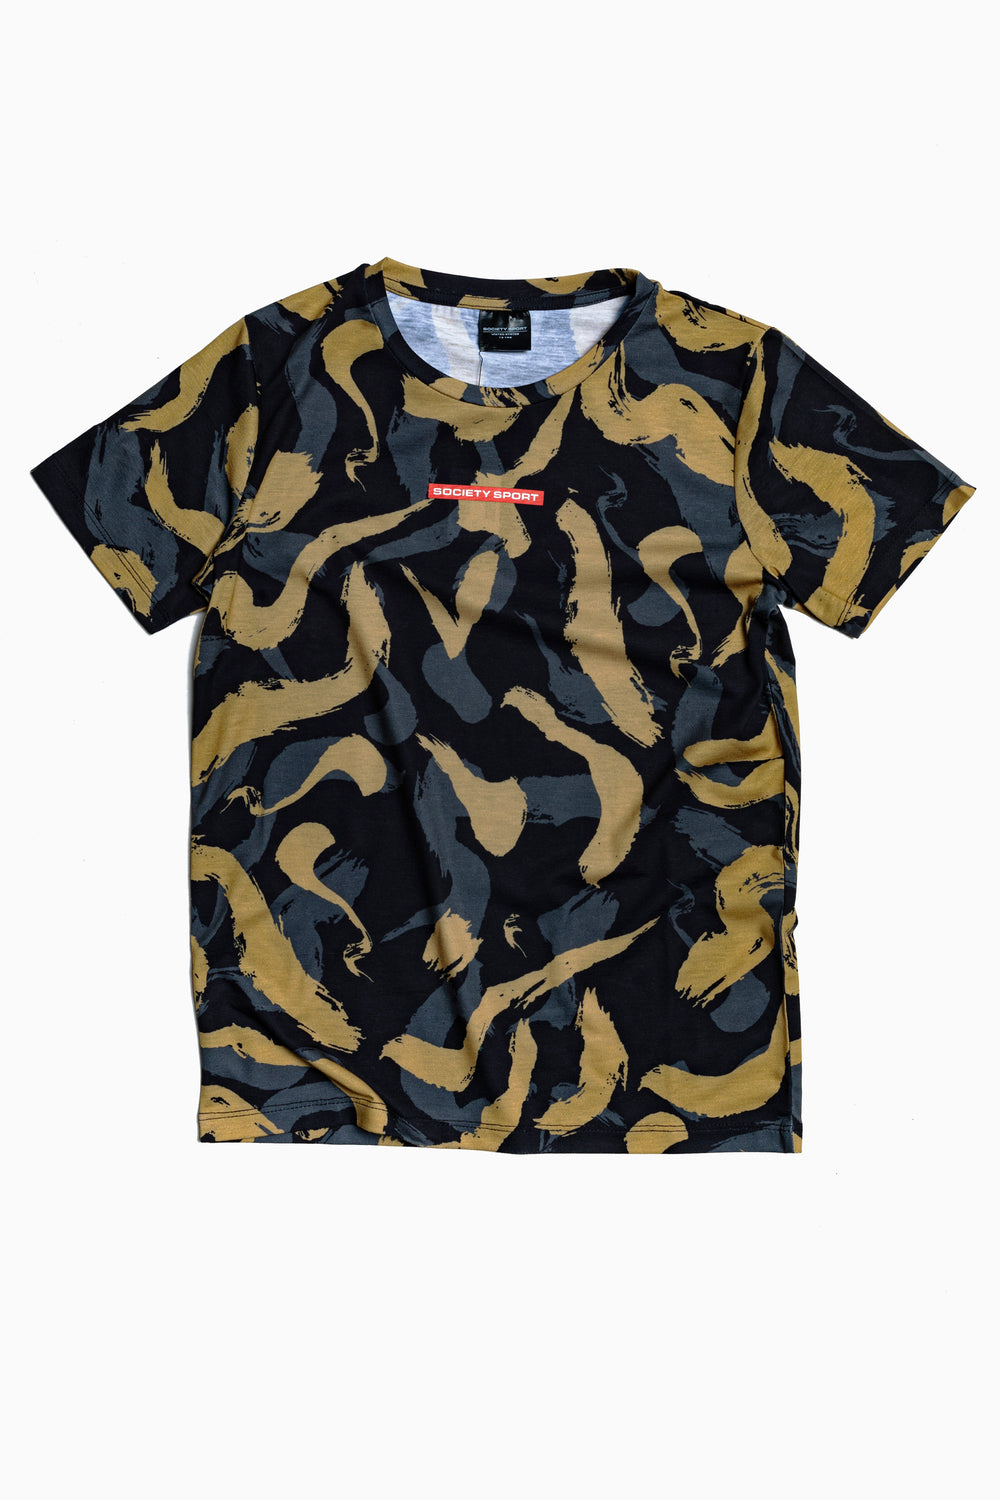 SOCIETY SPORT BRUSH STROKE T-SHIRT